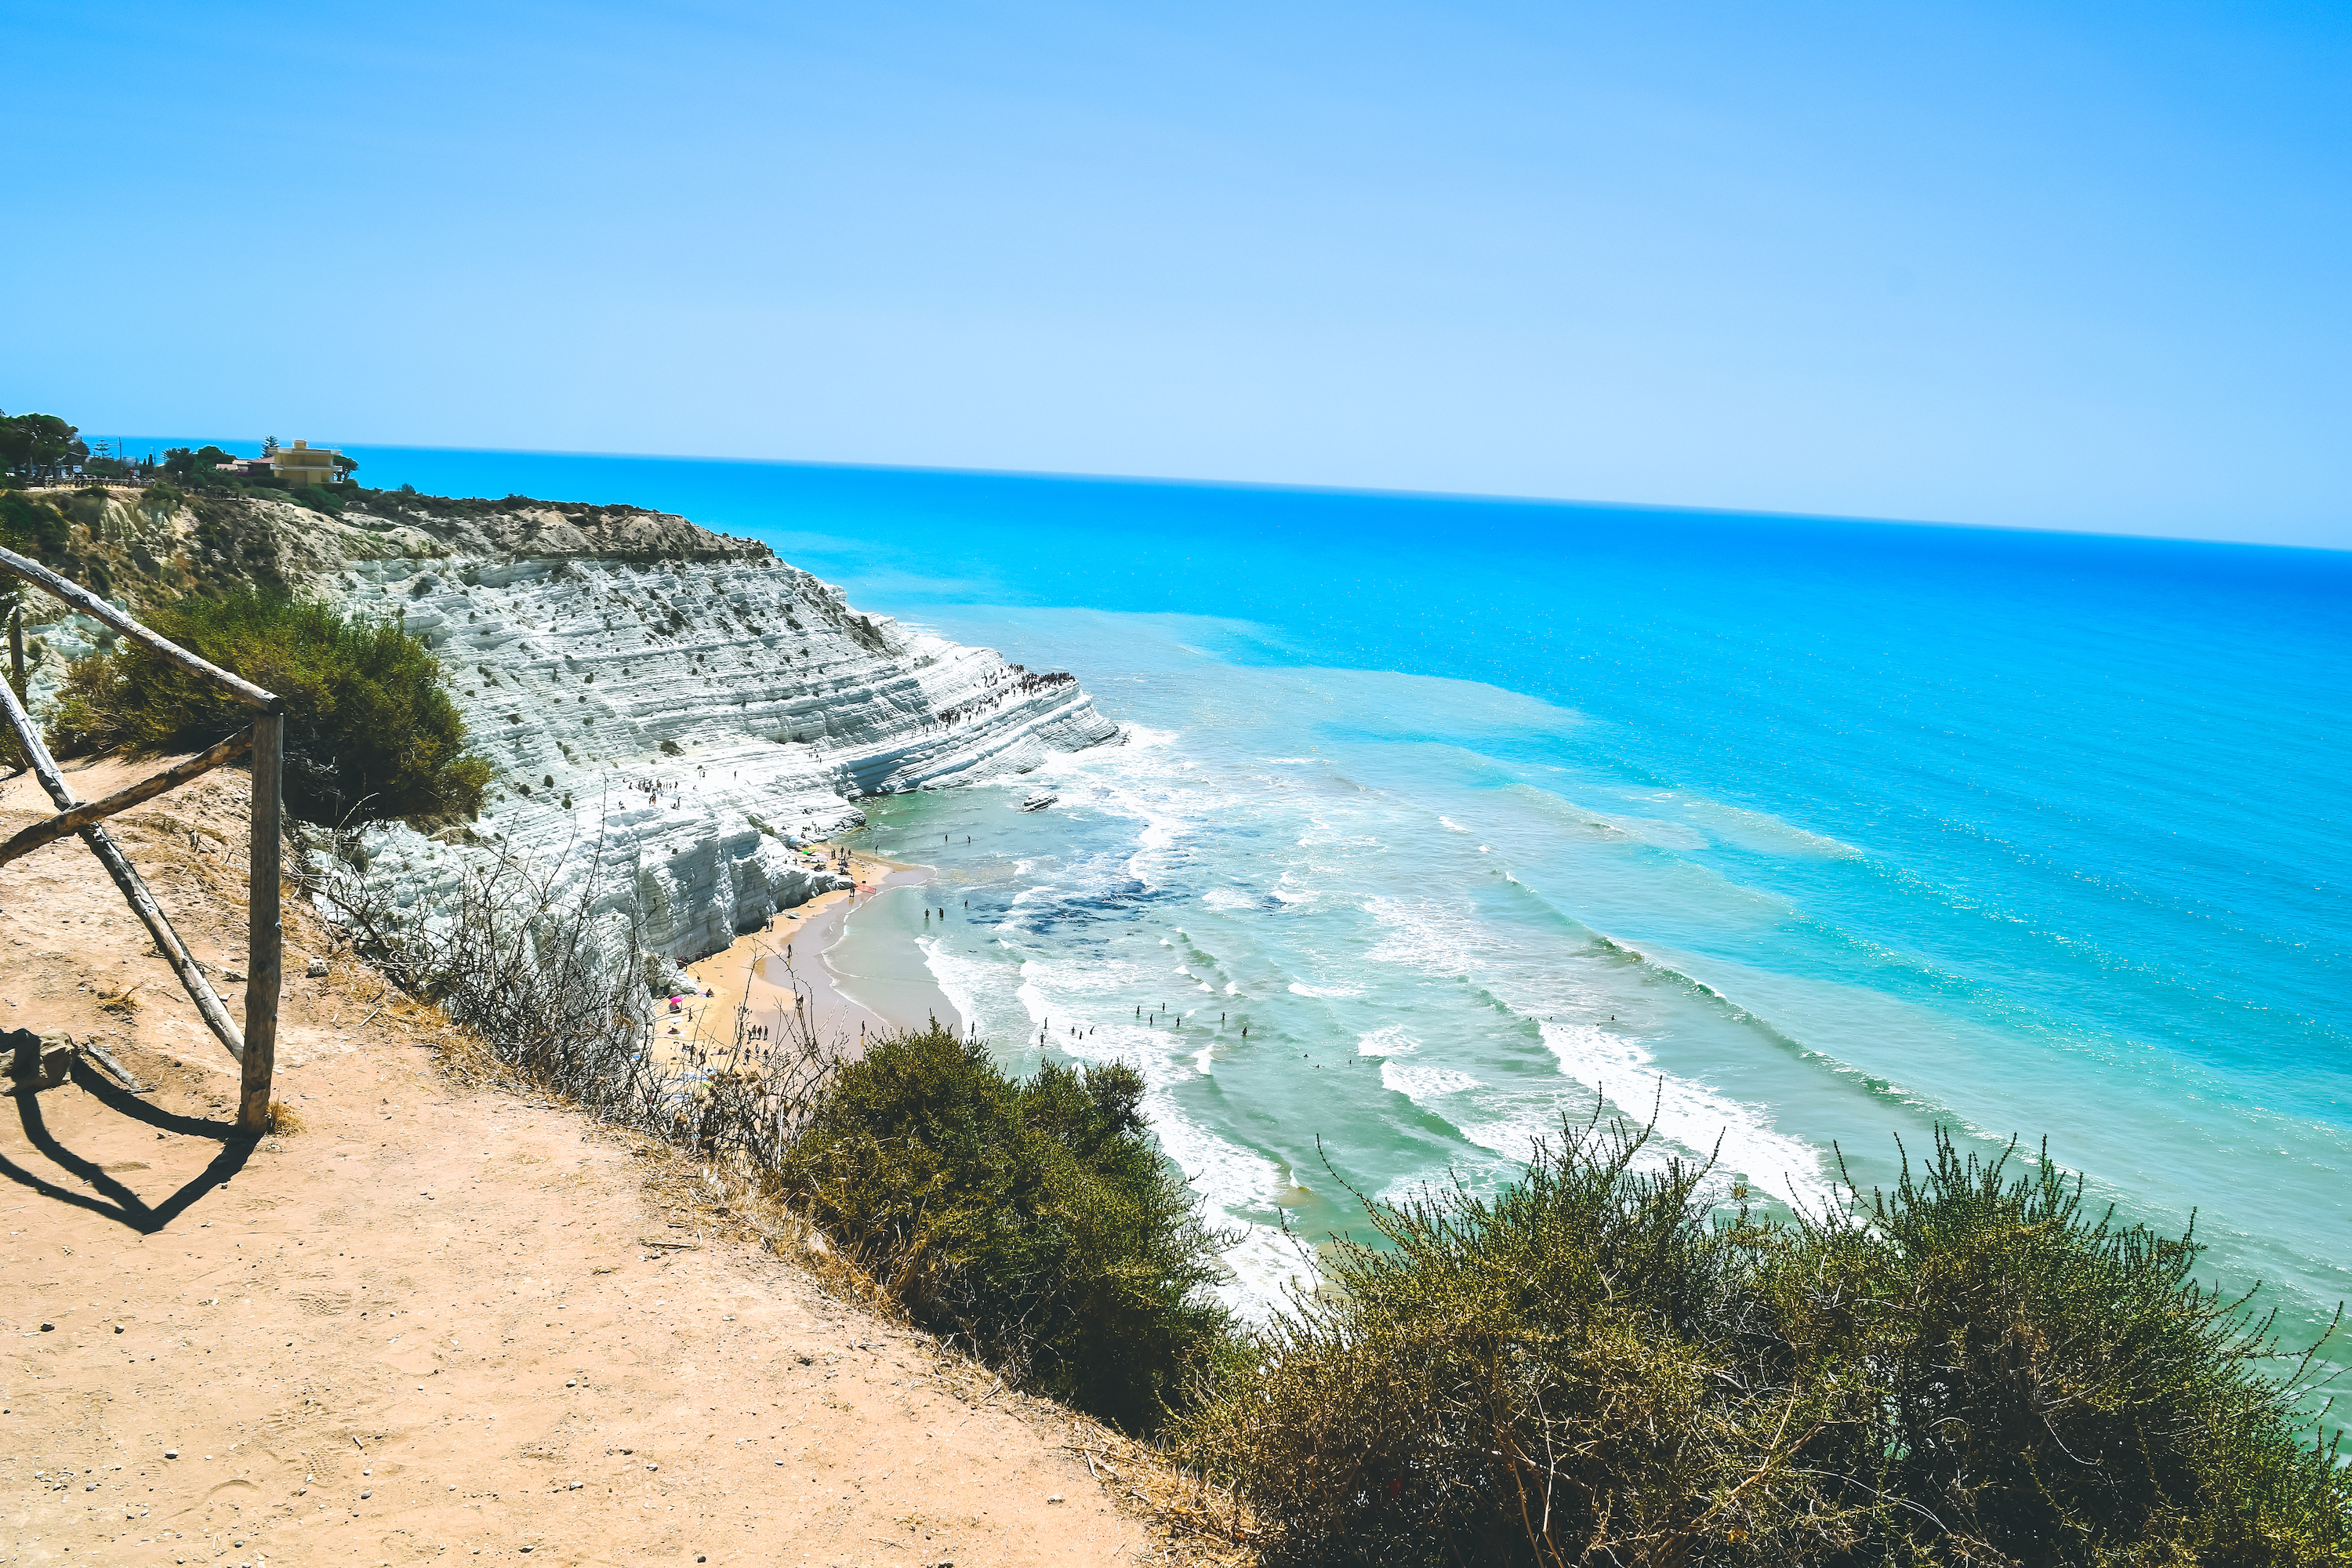 Travel guide to sicily scala dei turchi agrigento what to do see italy best time of year-22